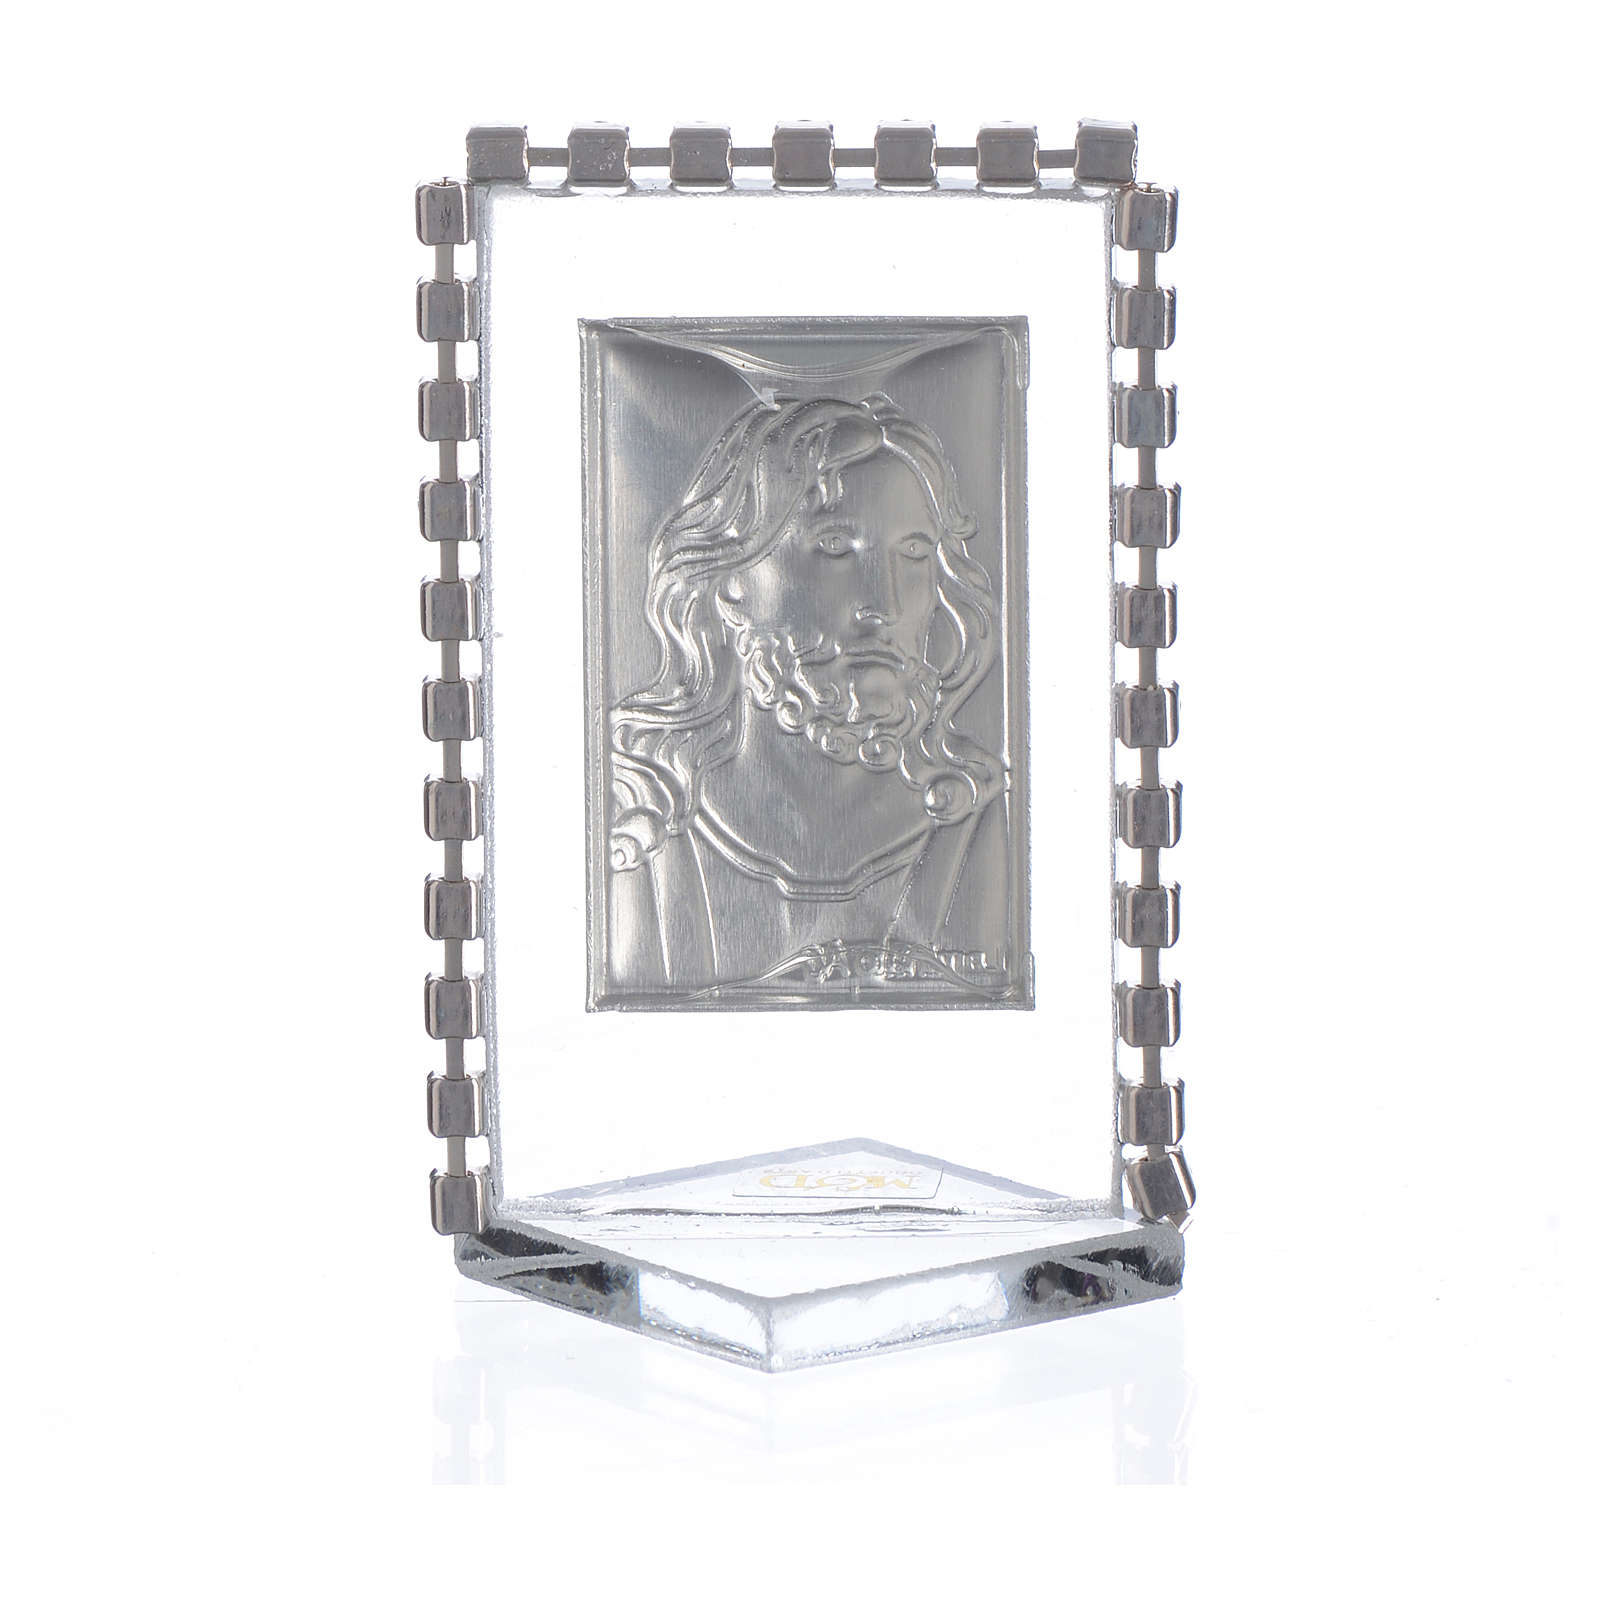 Picture with image of Christ, rhinestones 5.5x3.5cm 3